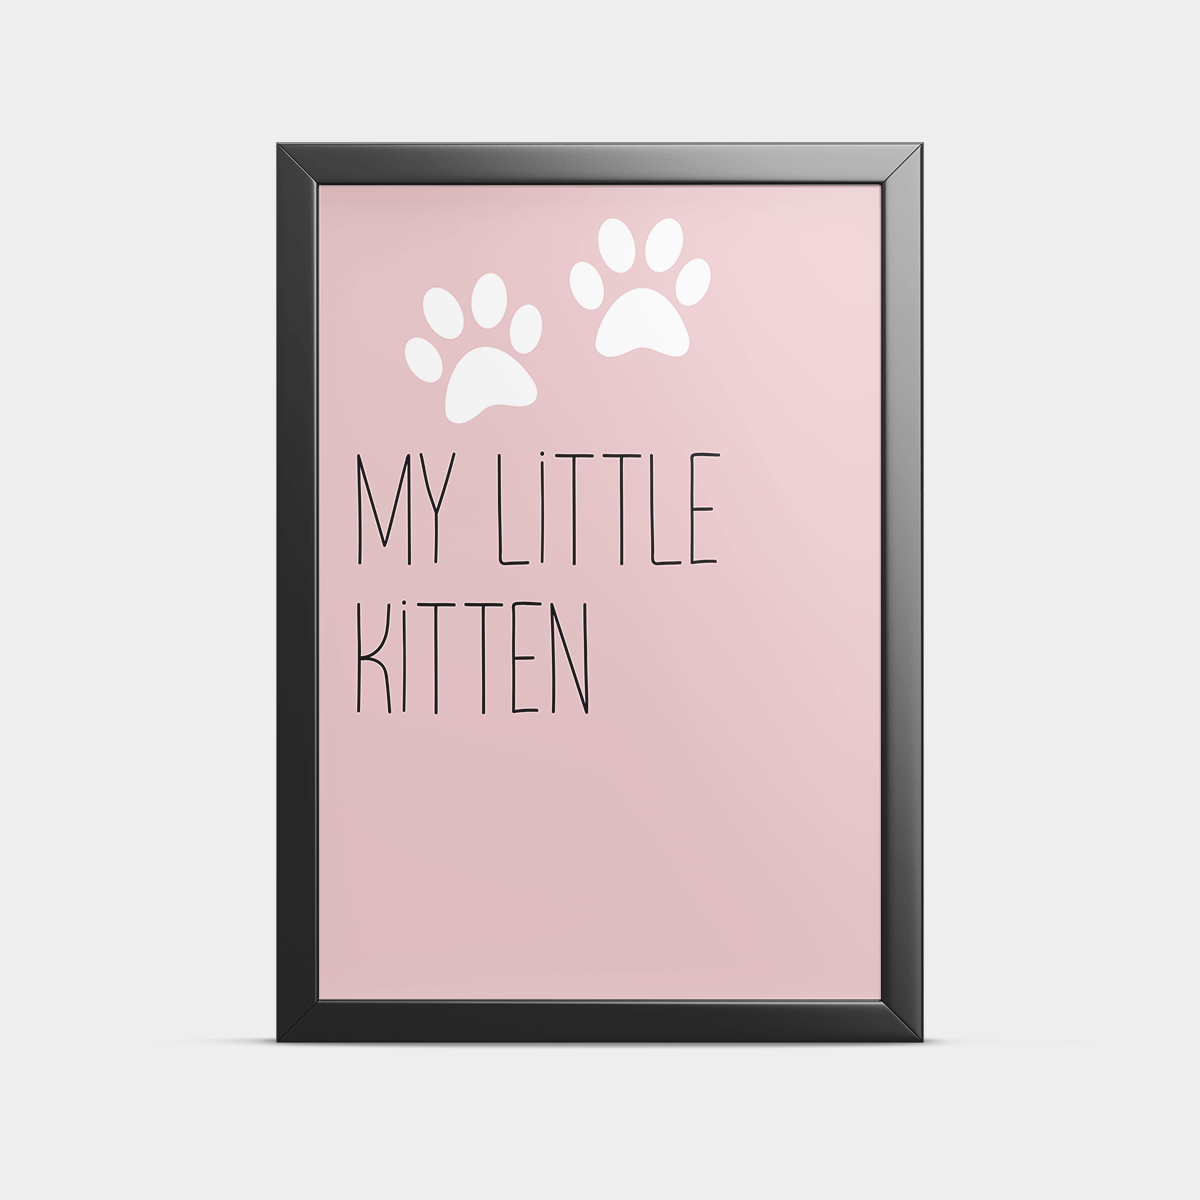 Постер на стену My little kitten 30*40 см